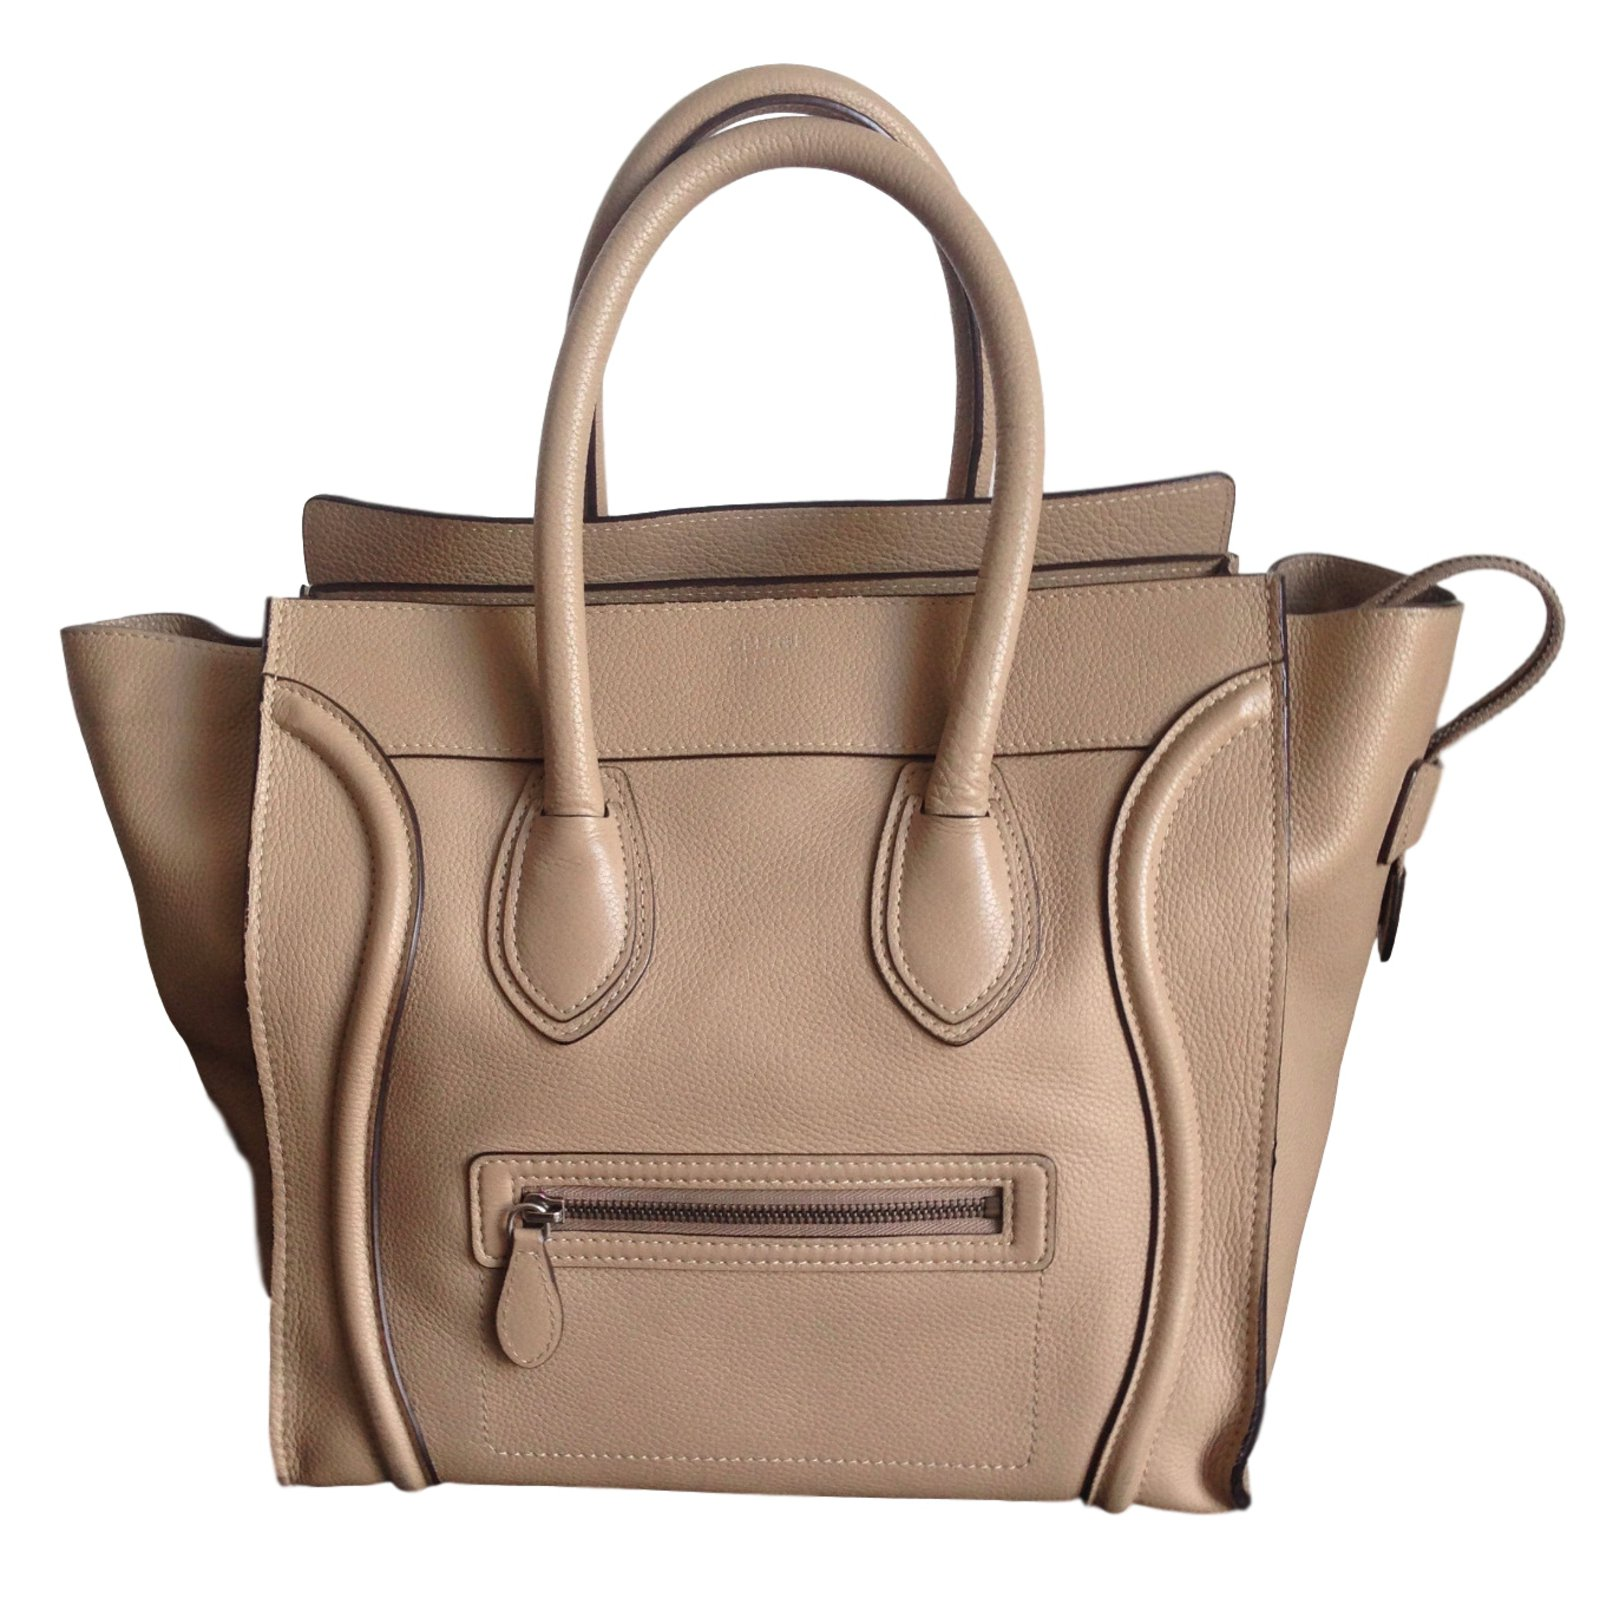 Sac A Main Beige Longchamps : Celine sac a main black leather luggage bag